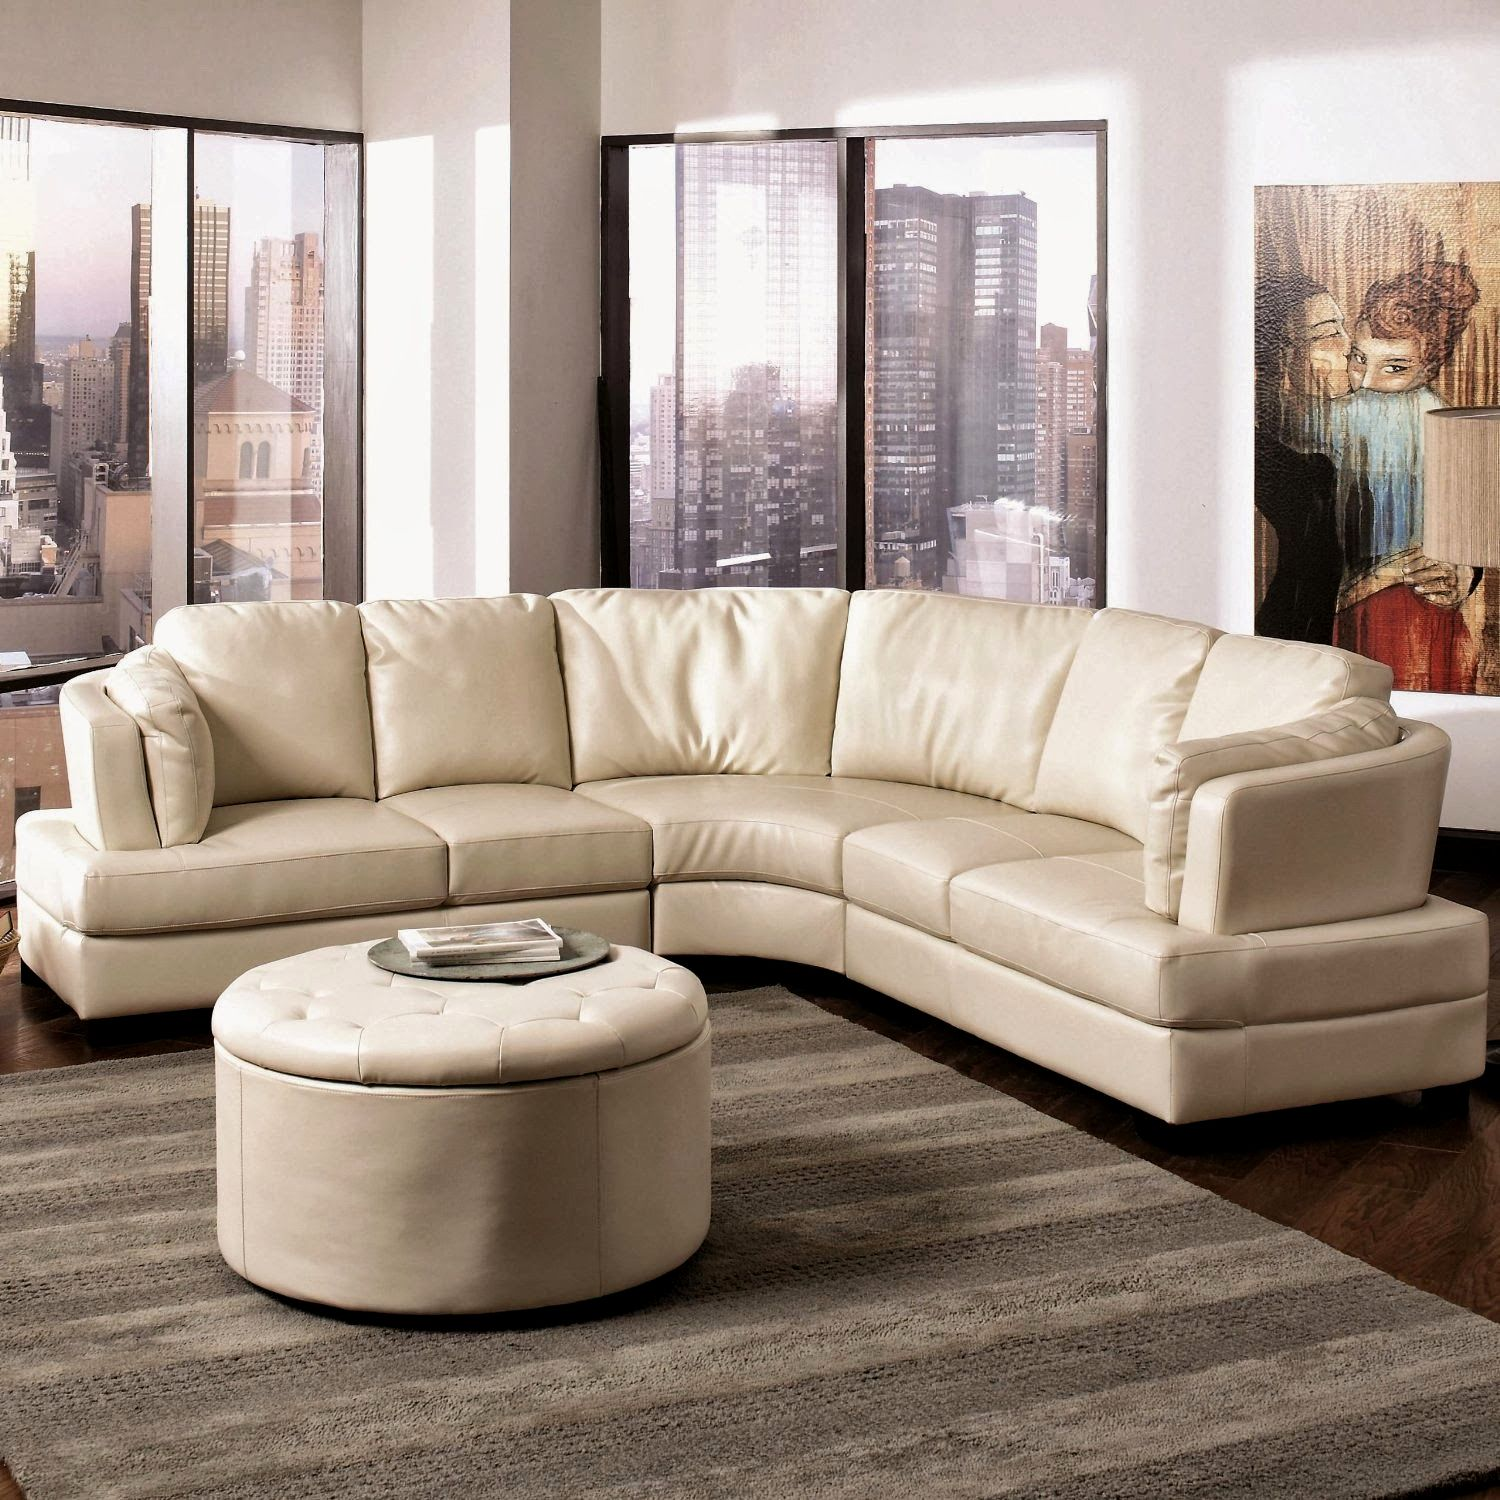 excellent bonded leather sofa layout-Amazing Bonded Leather sofa Online